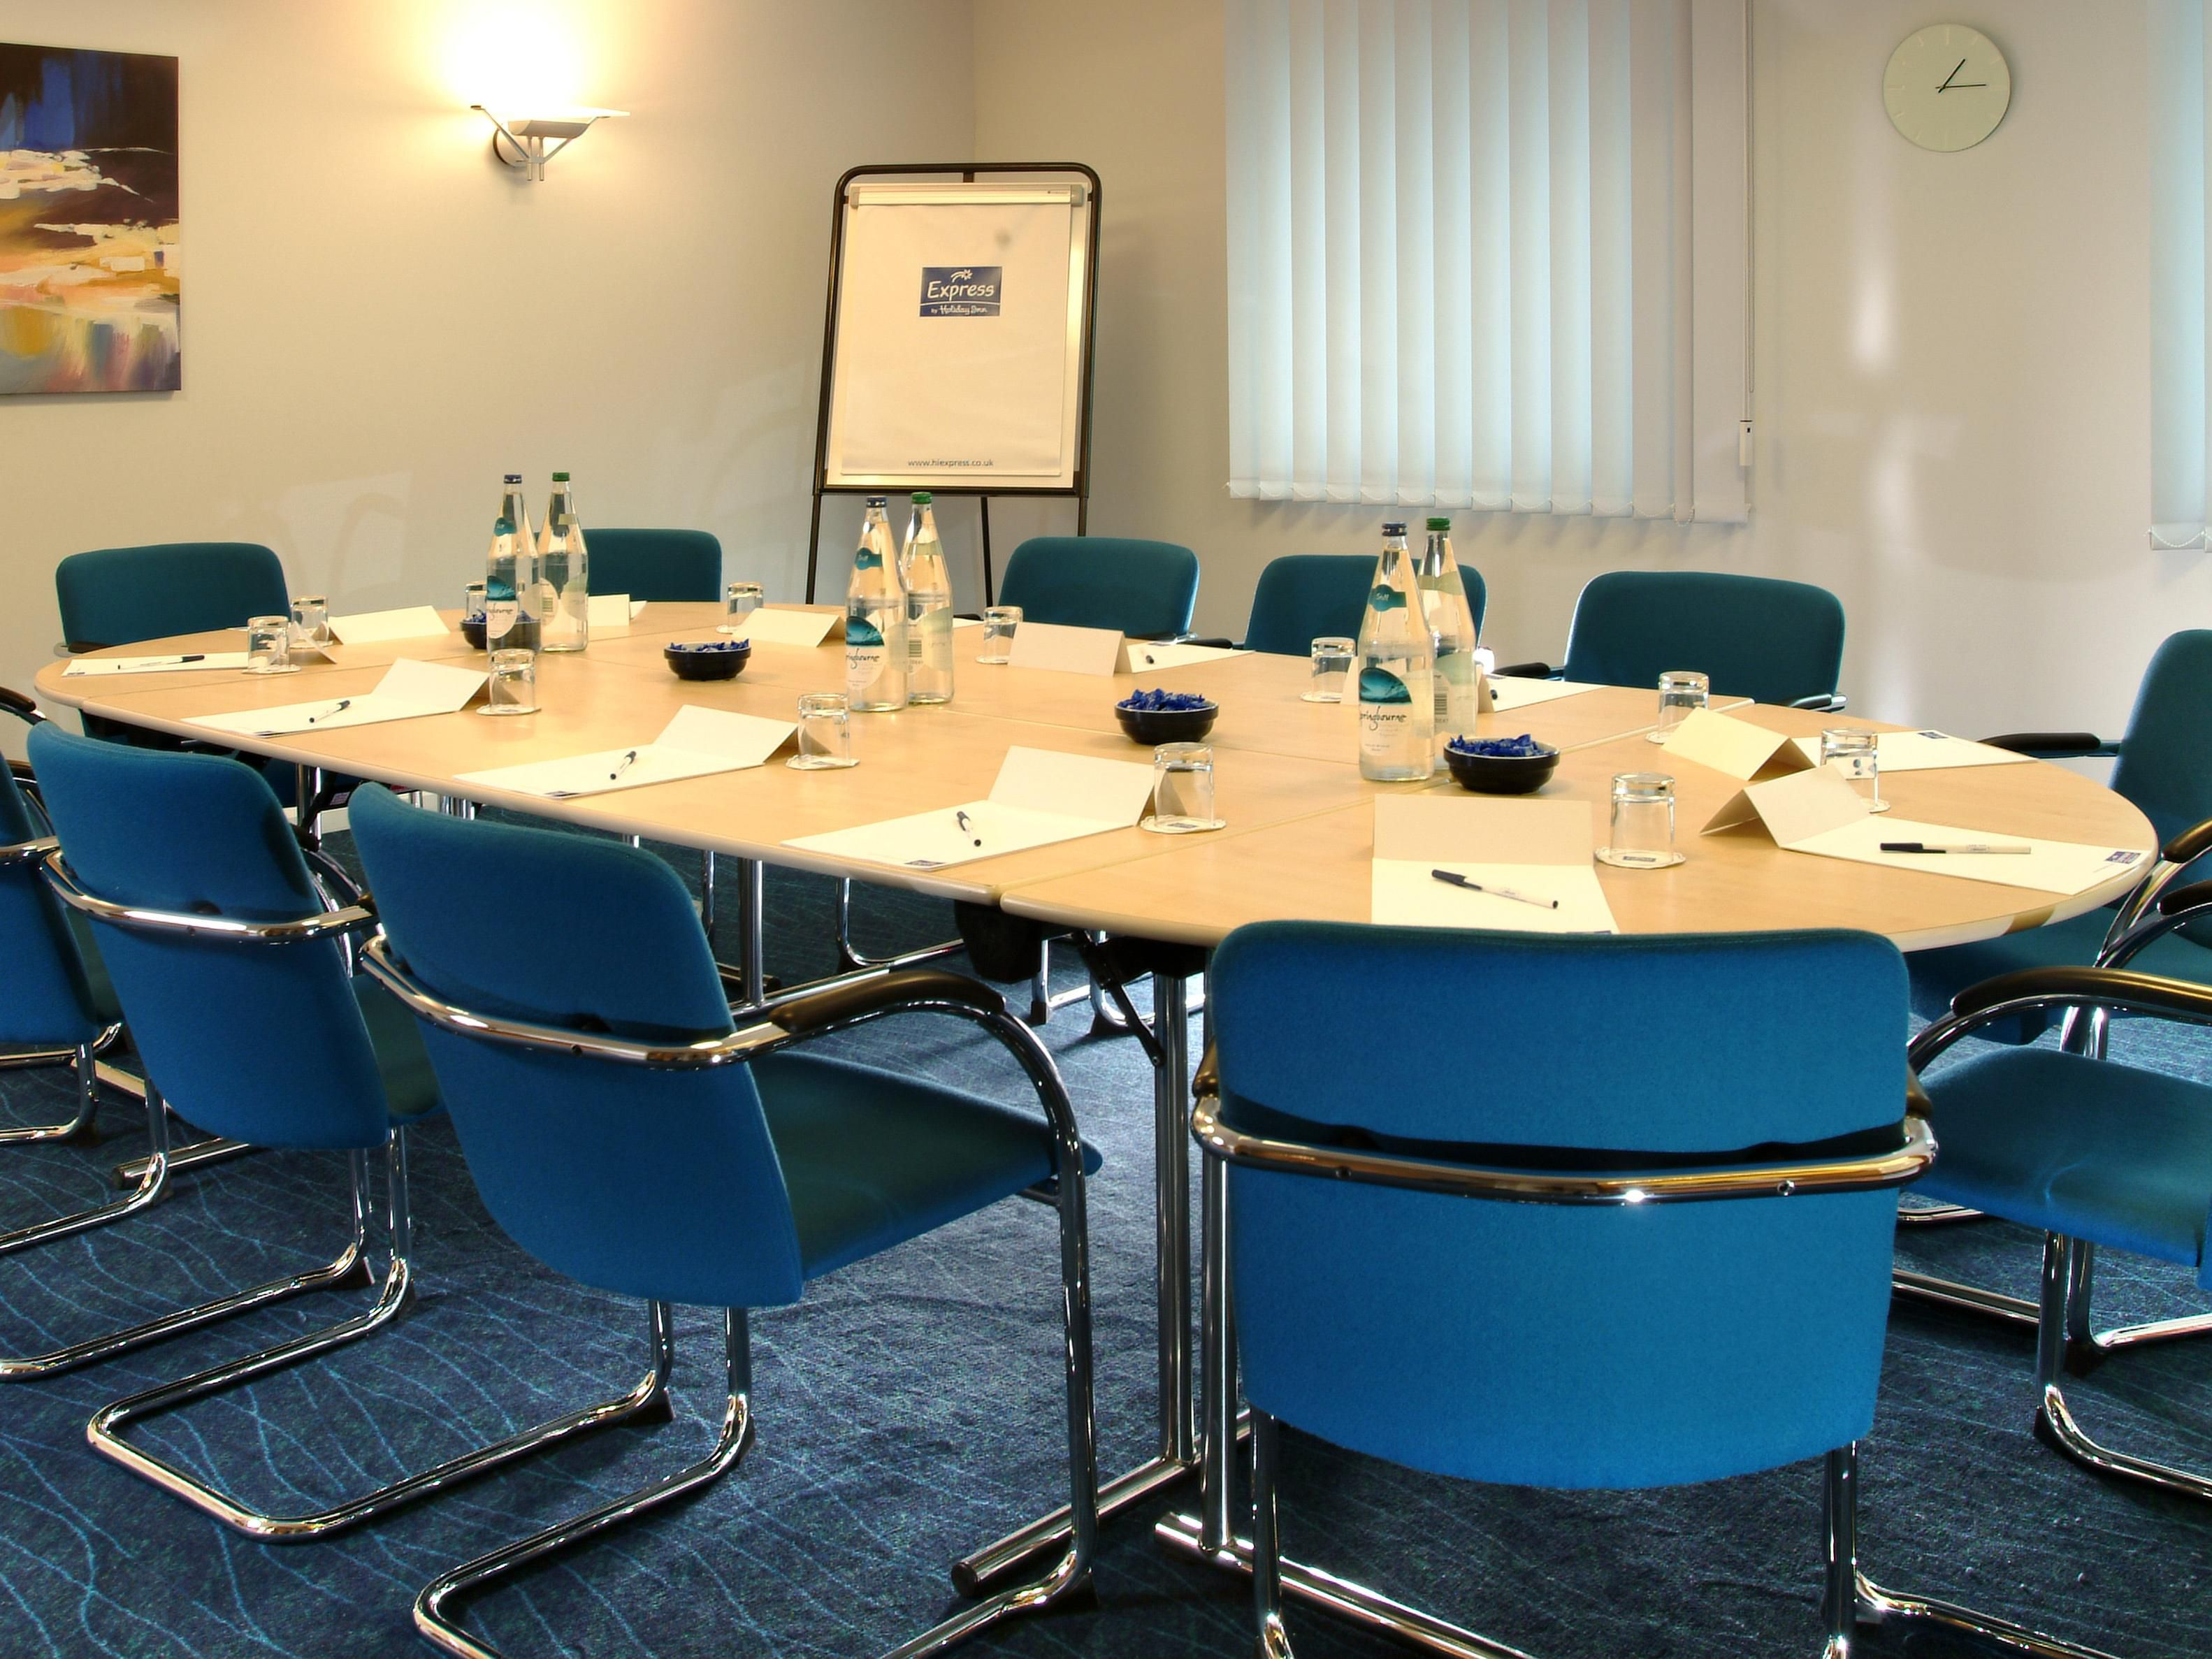 Contact us to find out about our fantastic value delegate packages